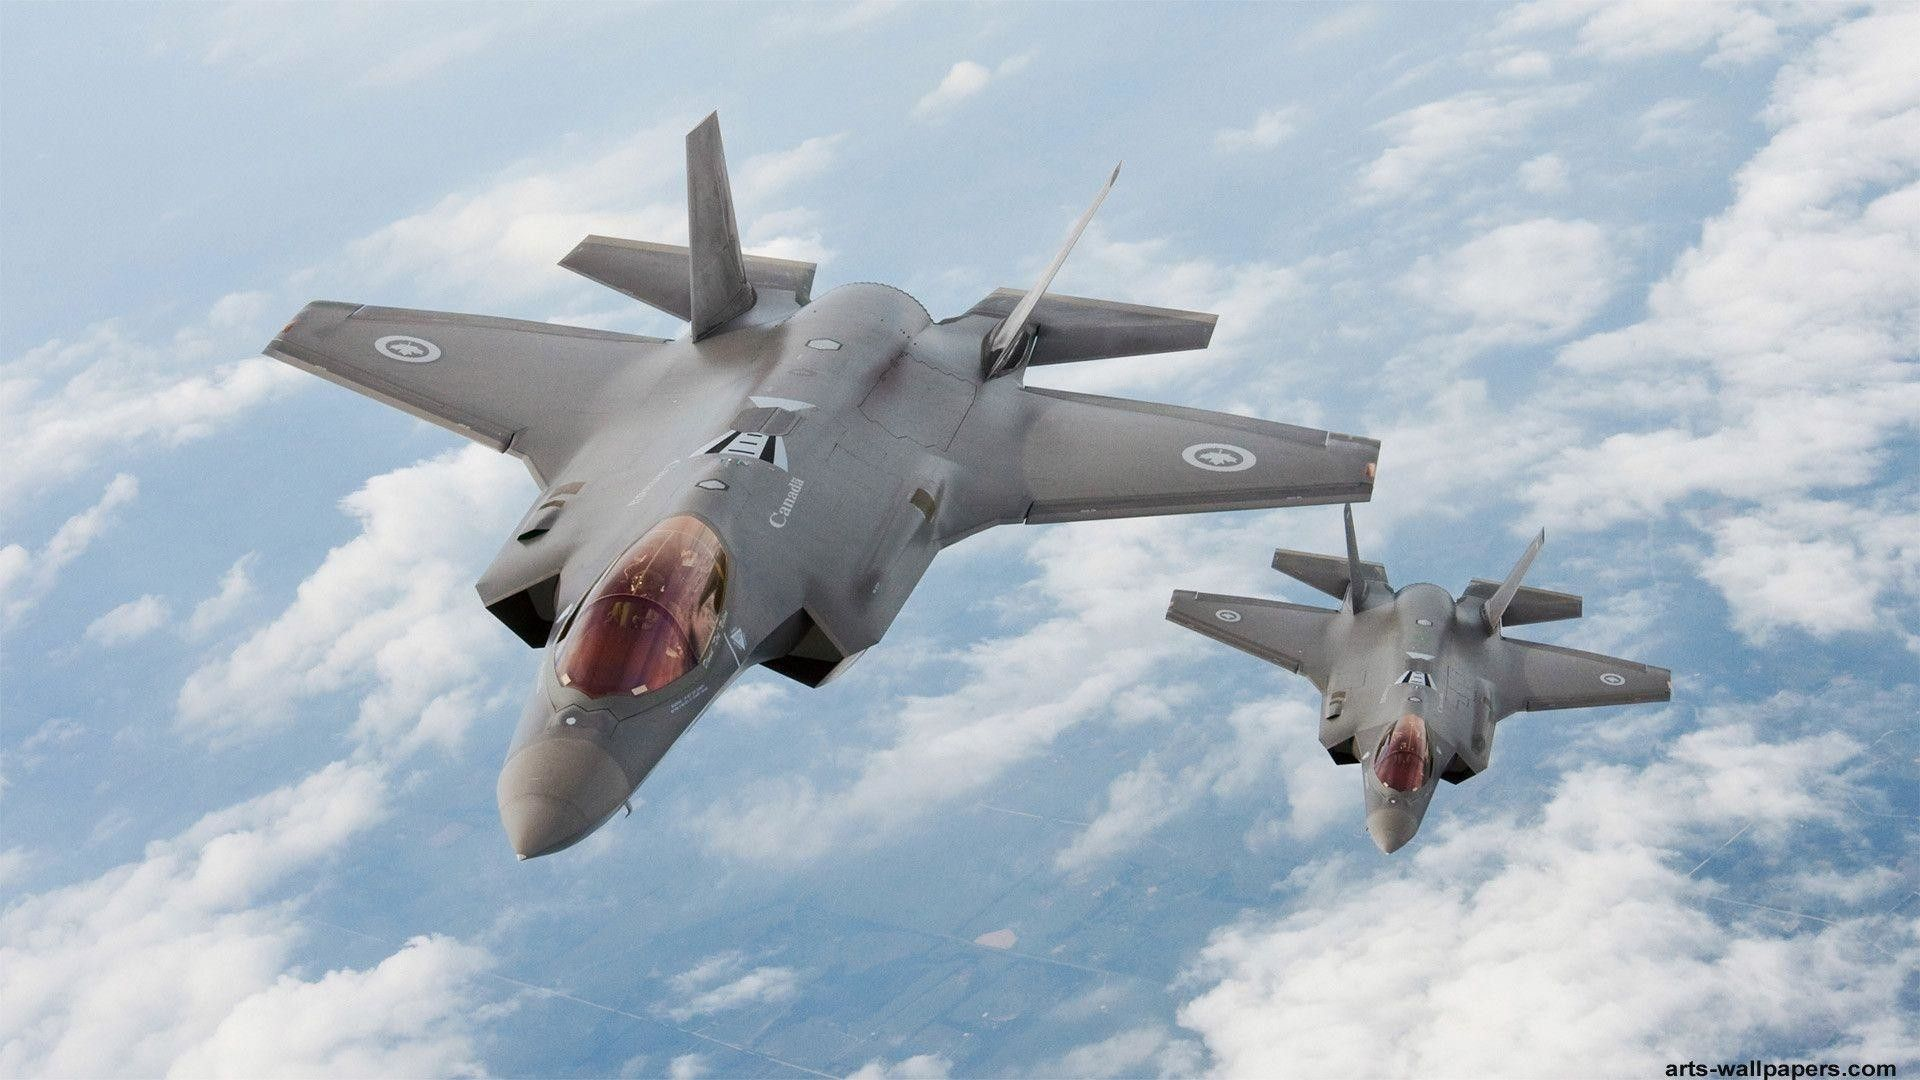 1920x1080 Wallpapers For > F 35 Wallpaper 1920x1080